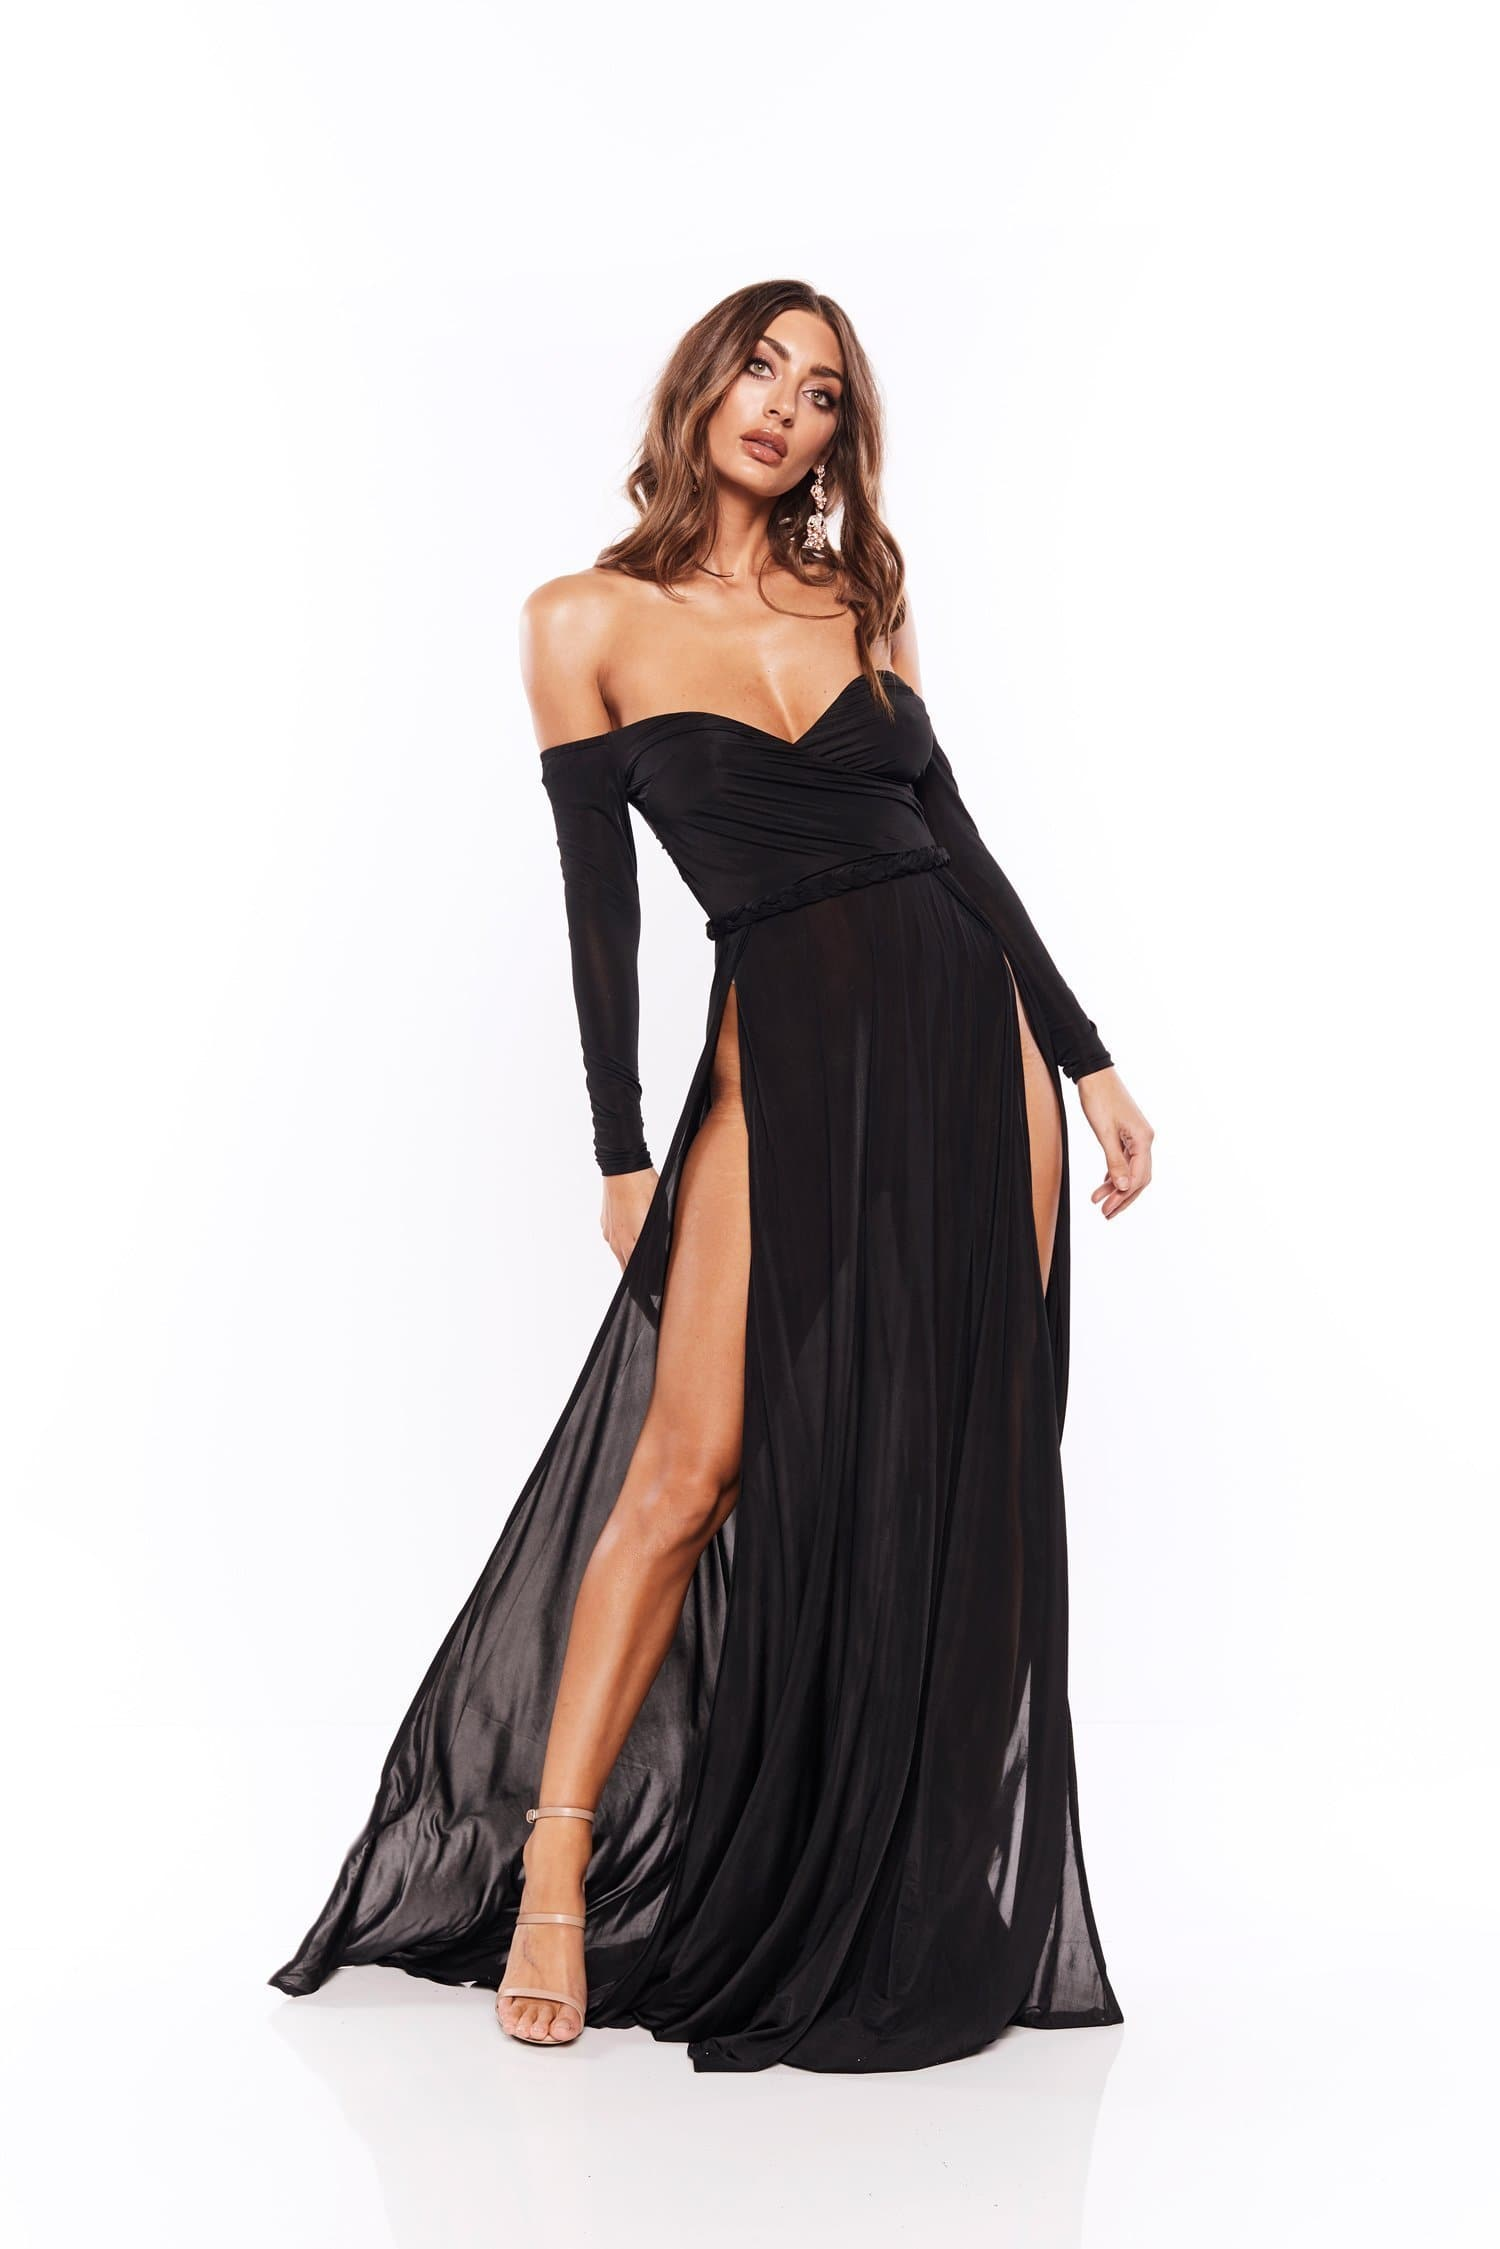 Parnella - Black Off Shoulder Long Sleeve Jersey Gown with Slit